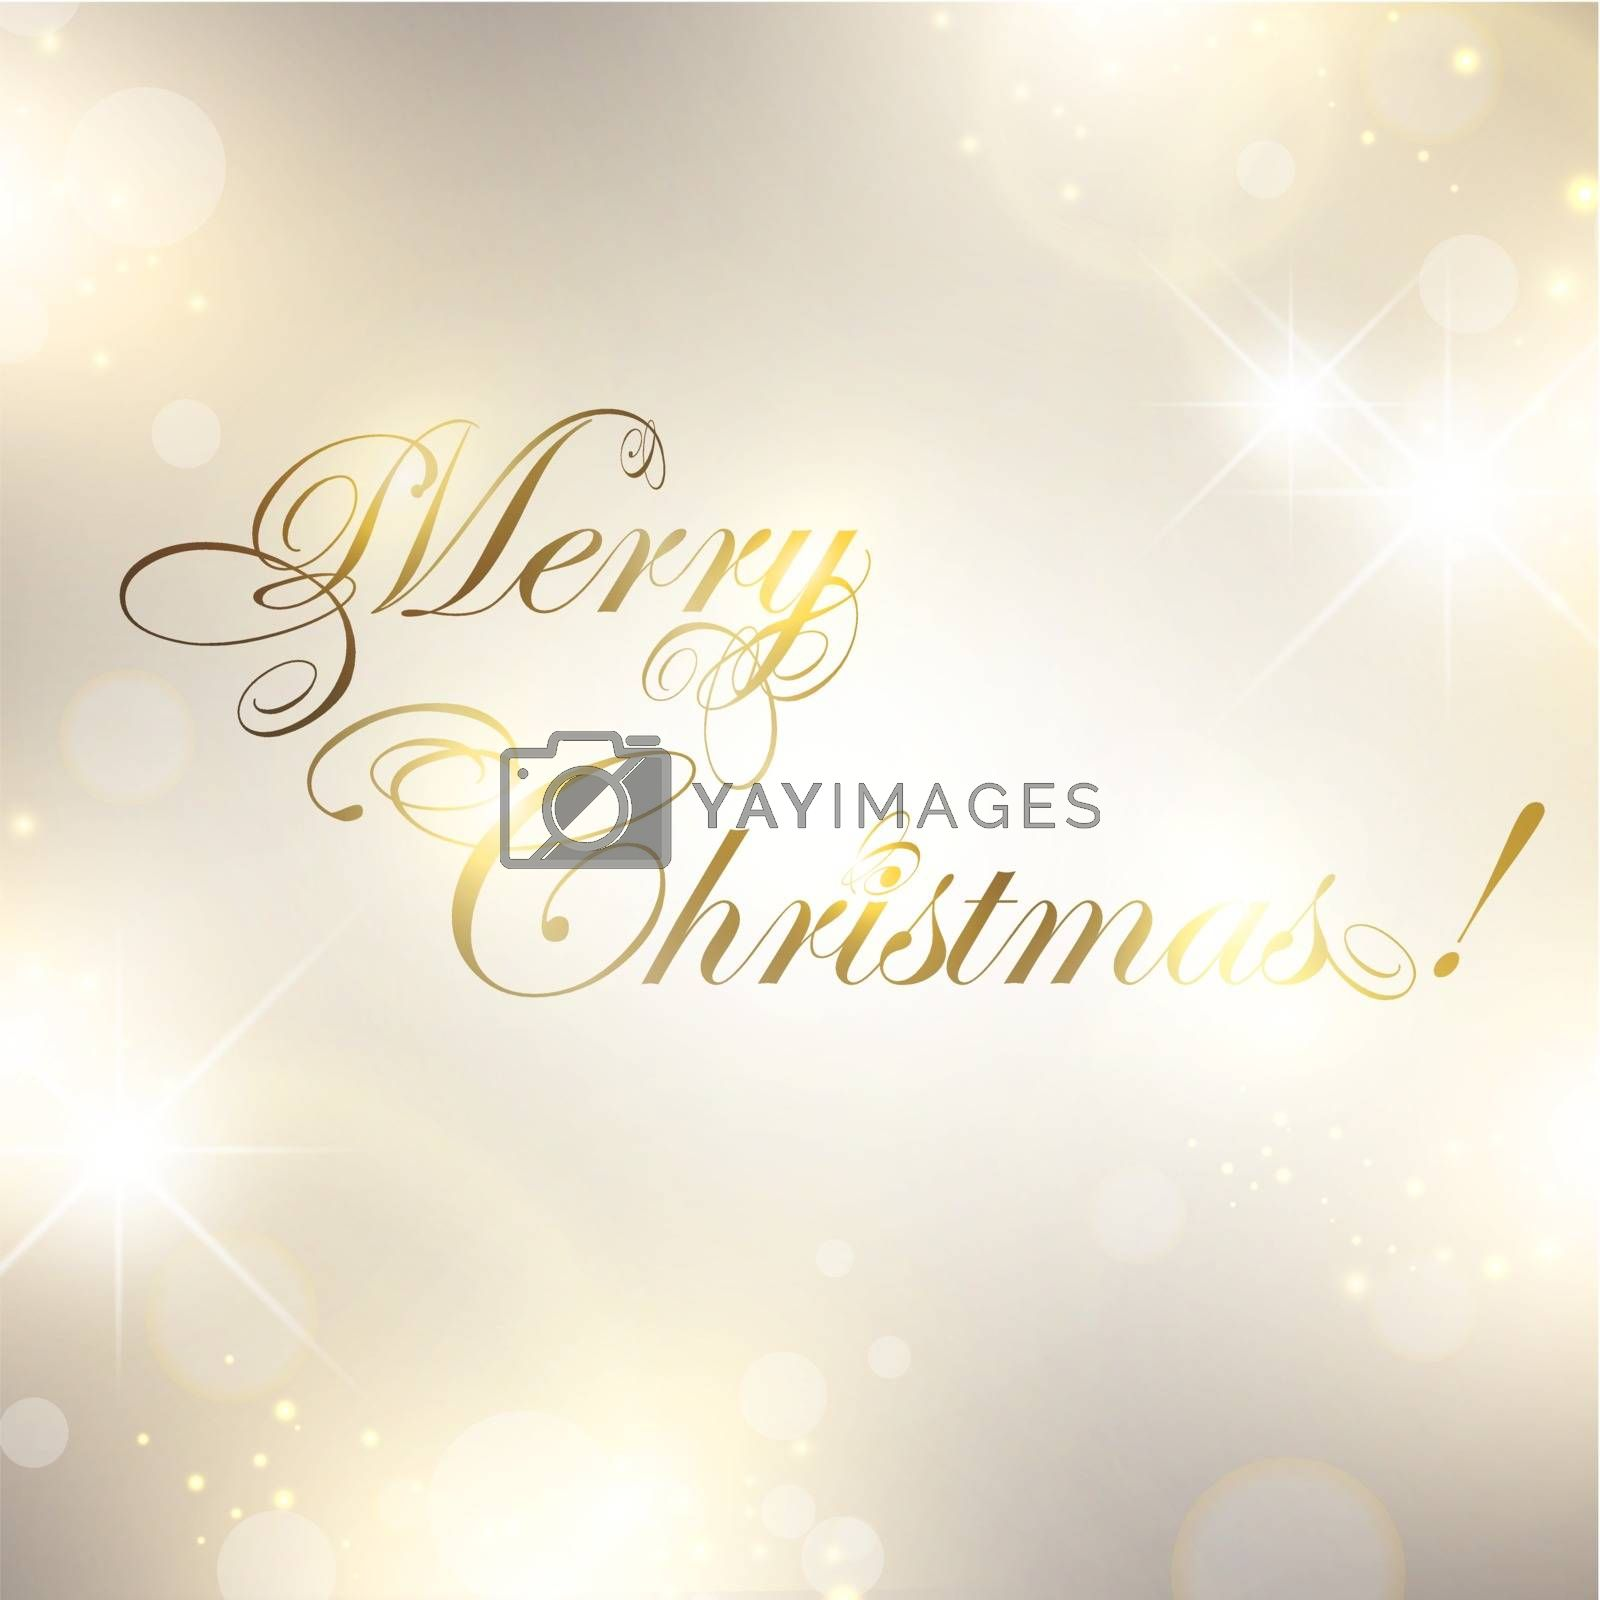 Christmas greetings over bright background with stars and lights